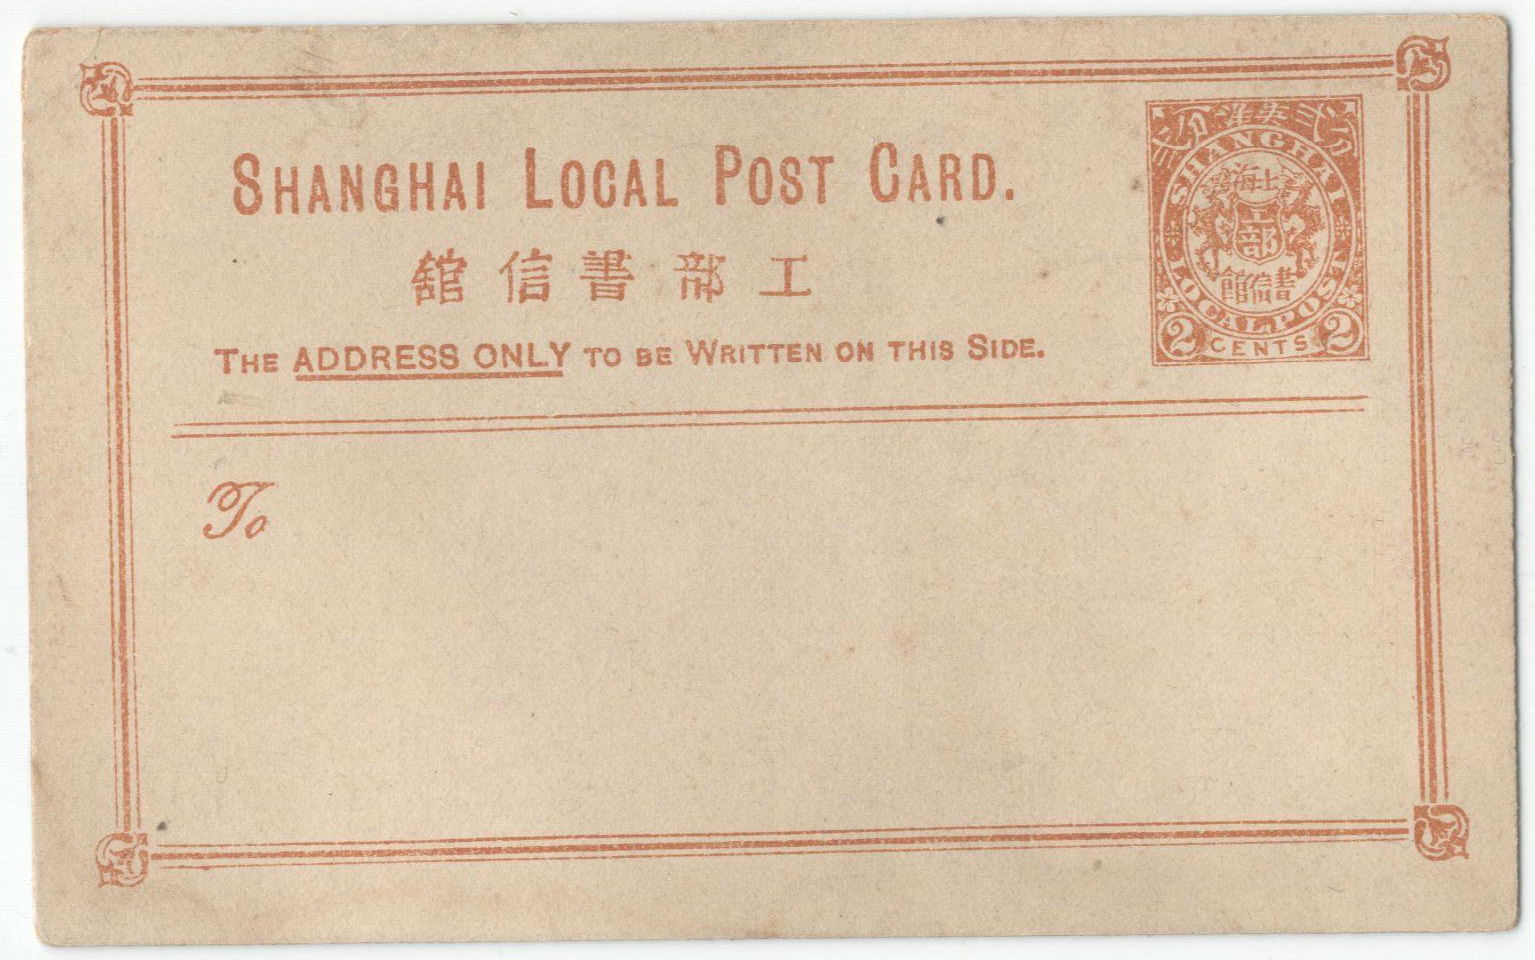 Lot 49 - SHANGHAI LOCAL POST CARD TWO CENTS